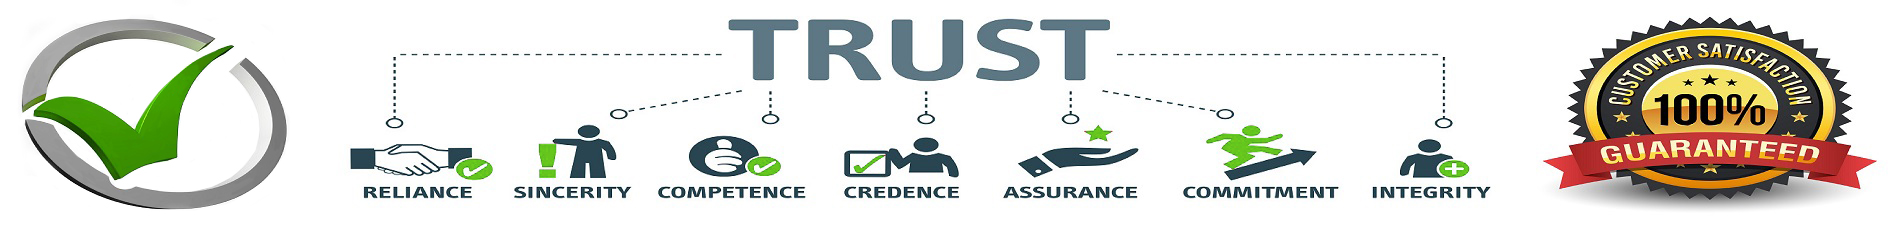 Trust as-builtdrawings.co.uk